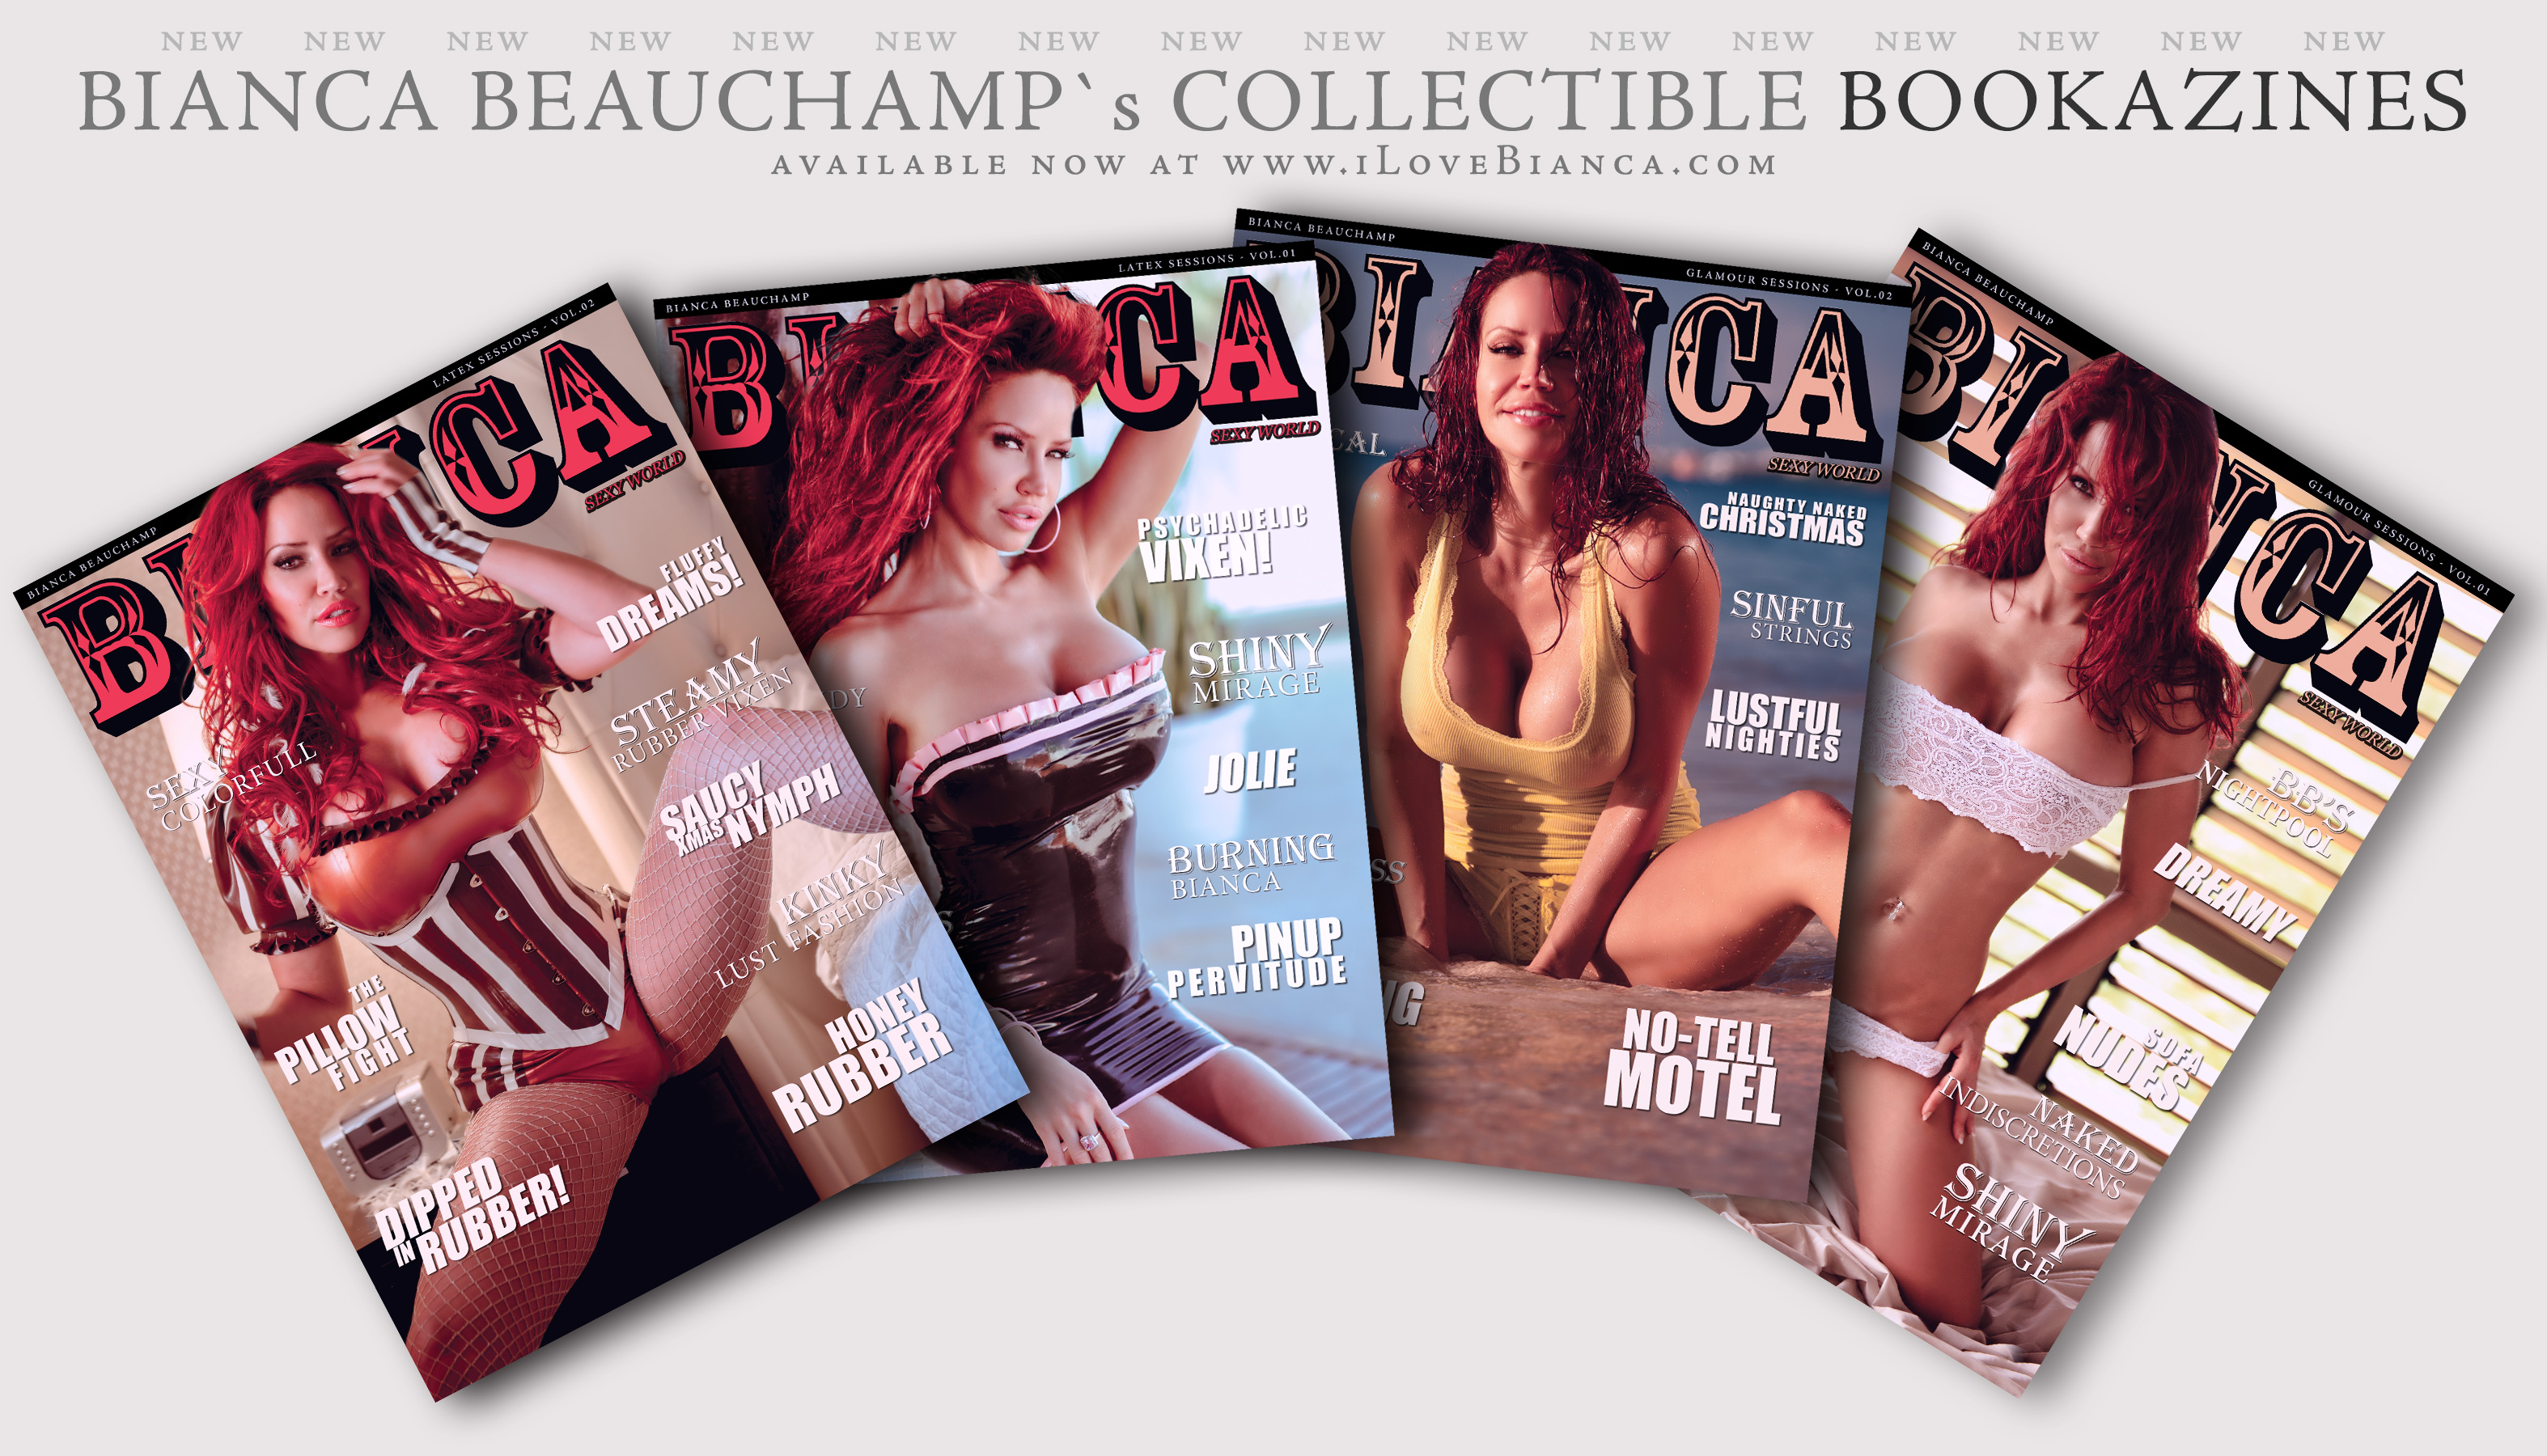 , [NEW] Get Bianca's brand new BOOKAZINES at 33% OFF!